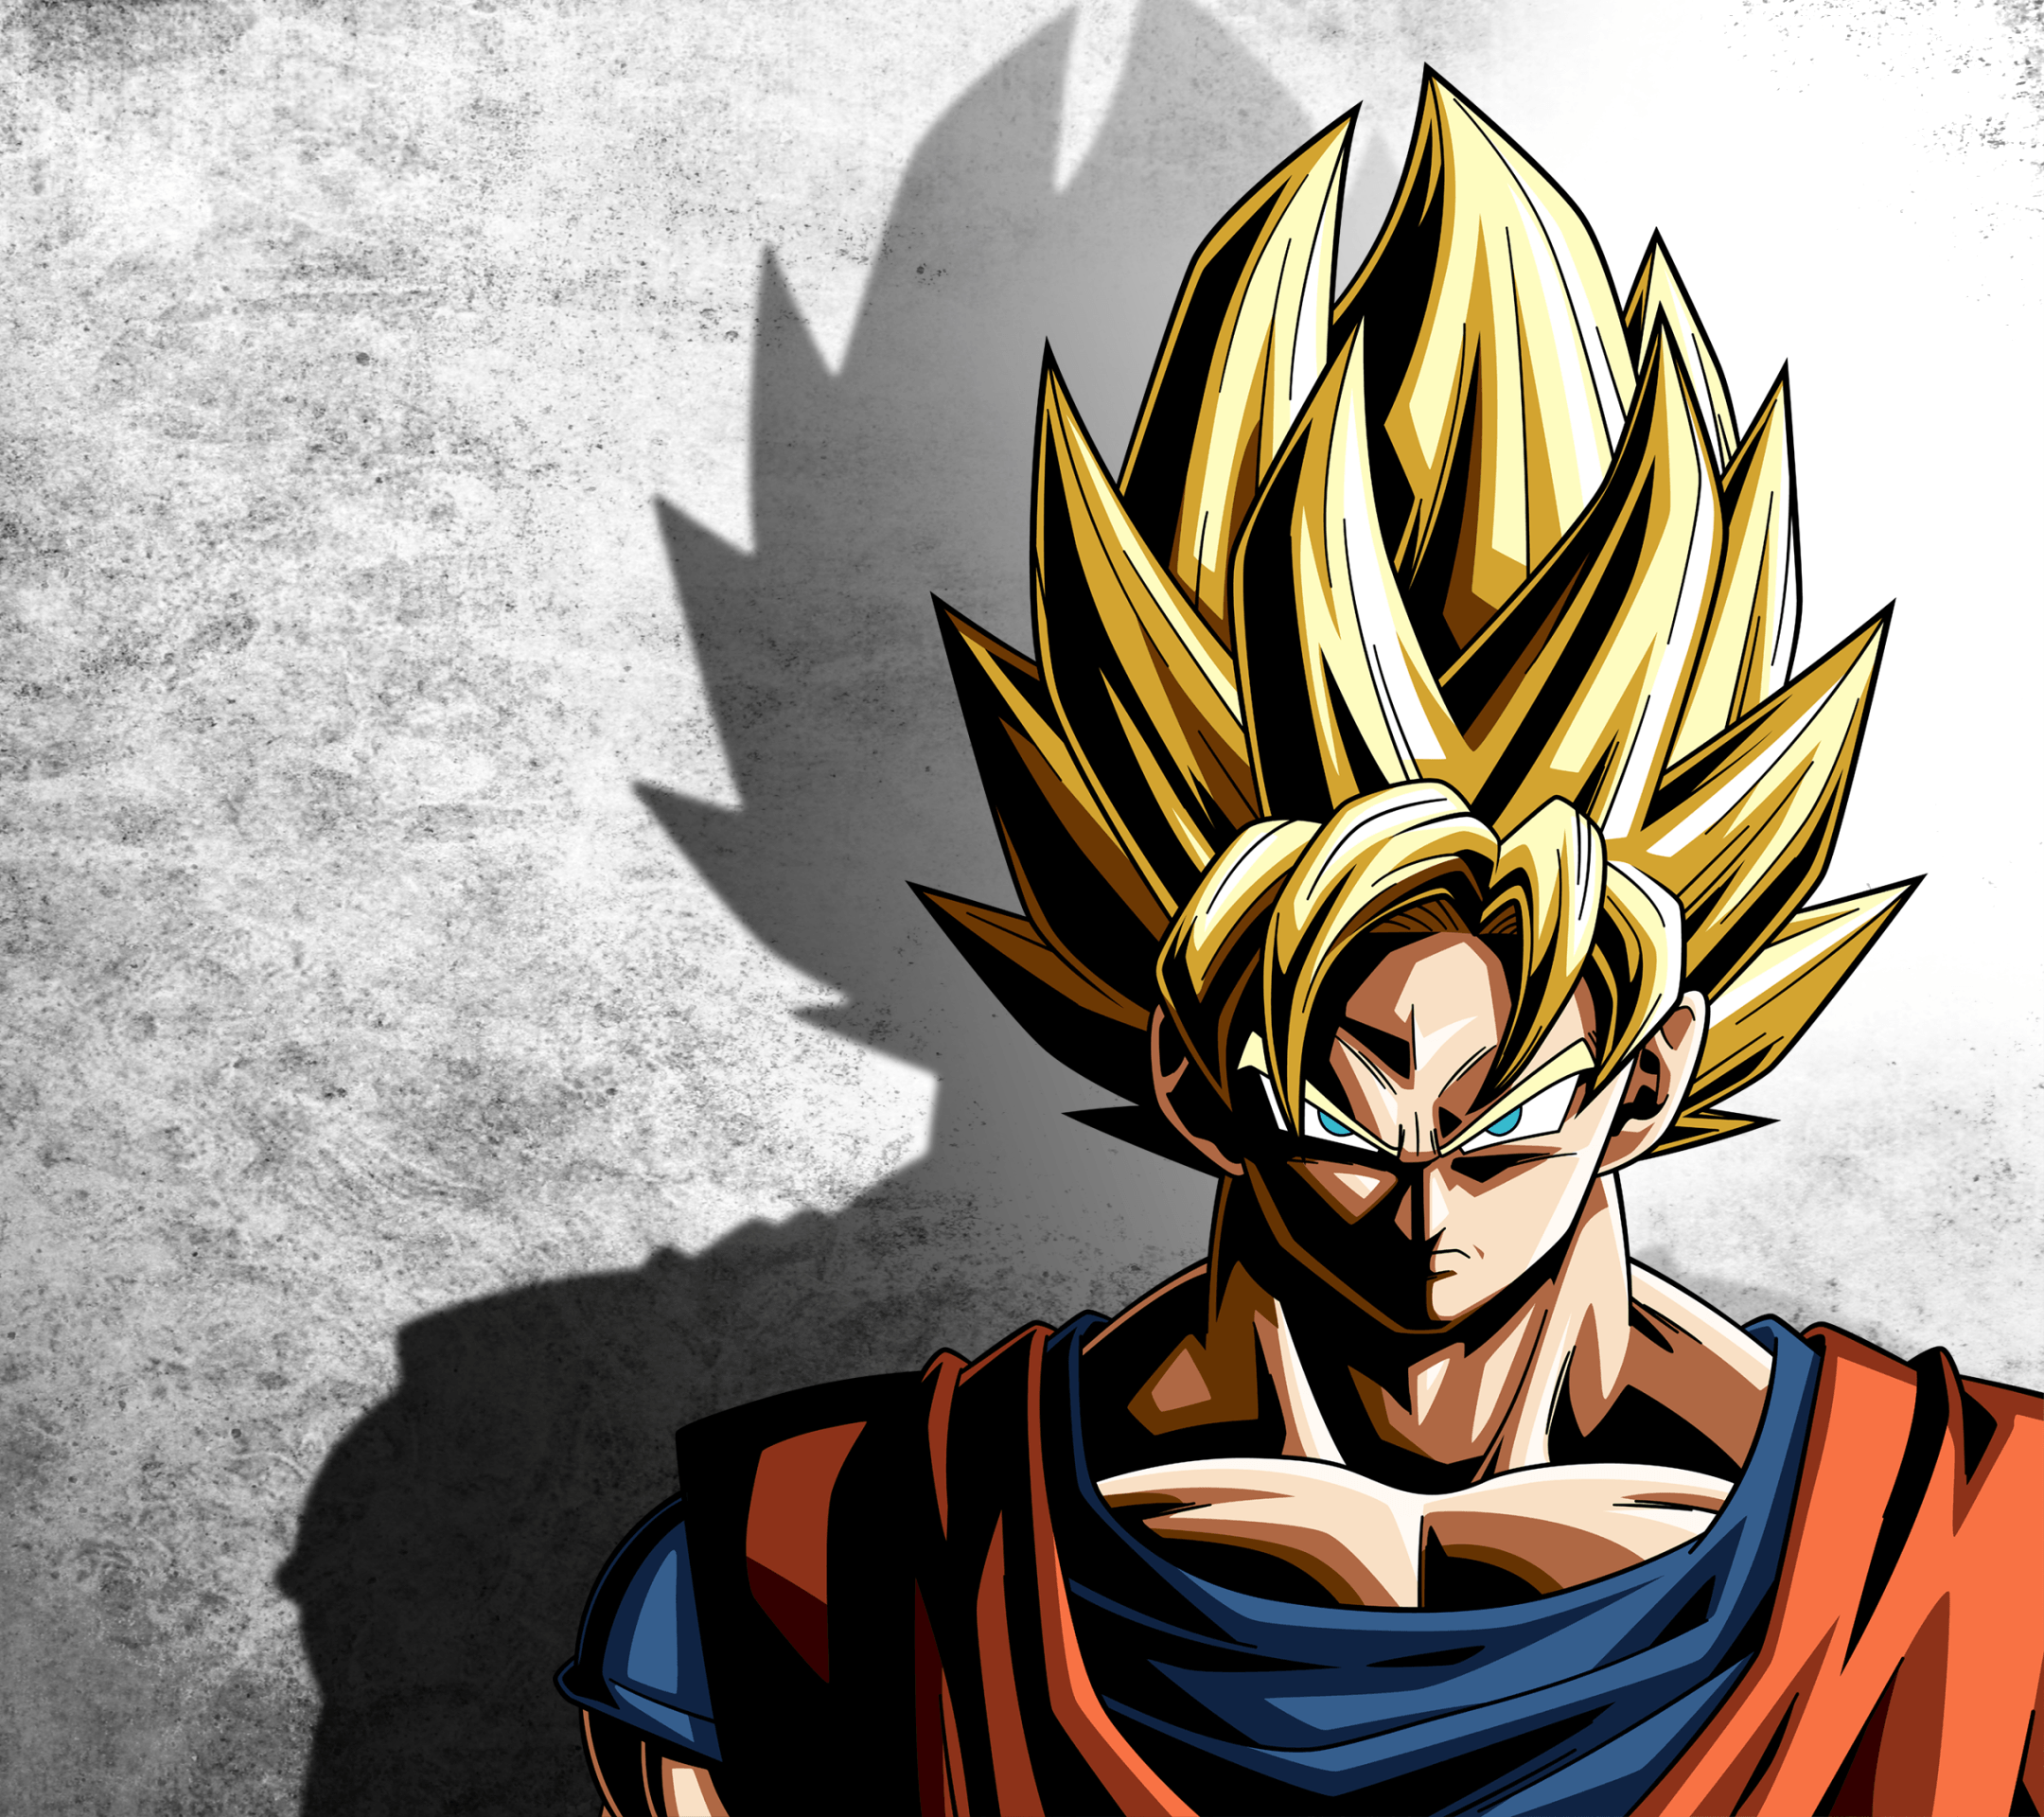 Anime Dragon Ball Z 2160x1920 Wallpaper ID 650725